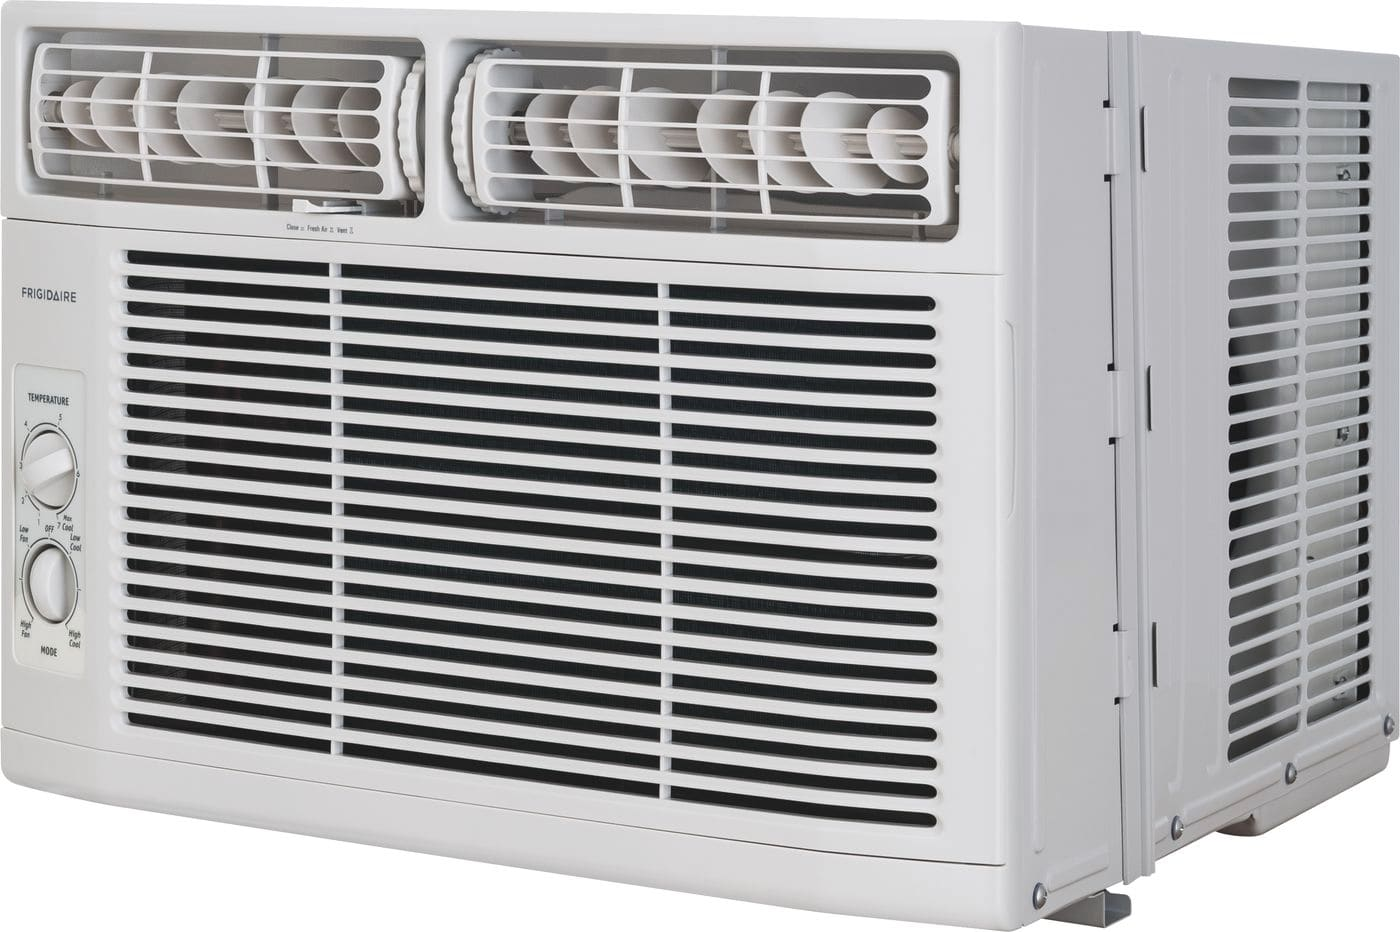 Model: FFRA1211R1 | Frigidaire 12,000 BTU Window-Mounted Room Air Conditioner